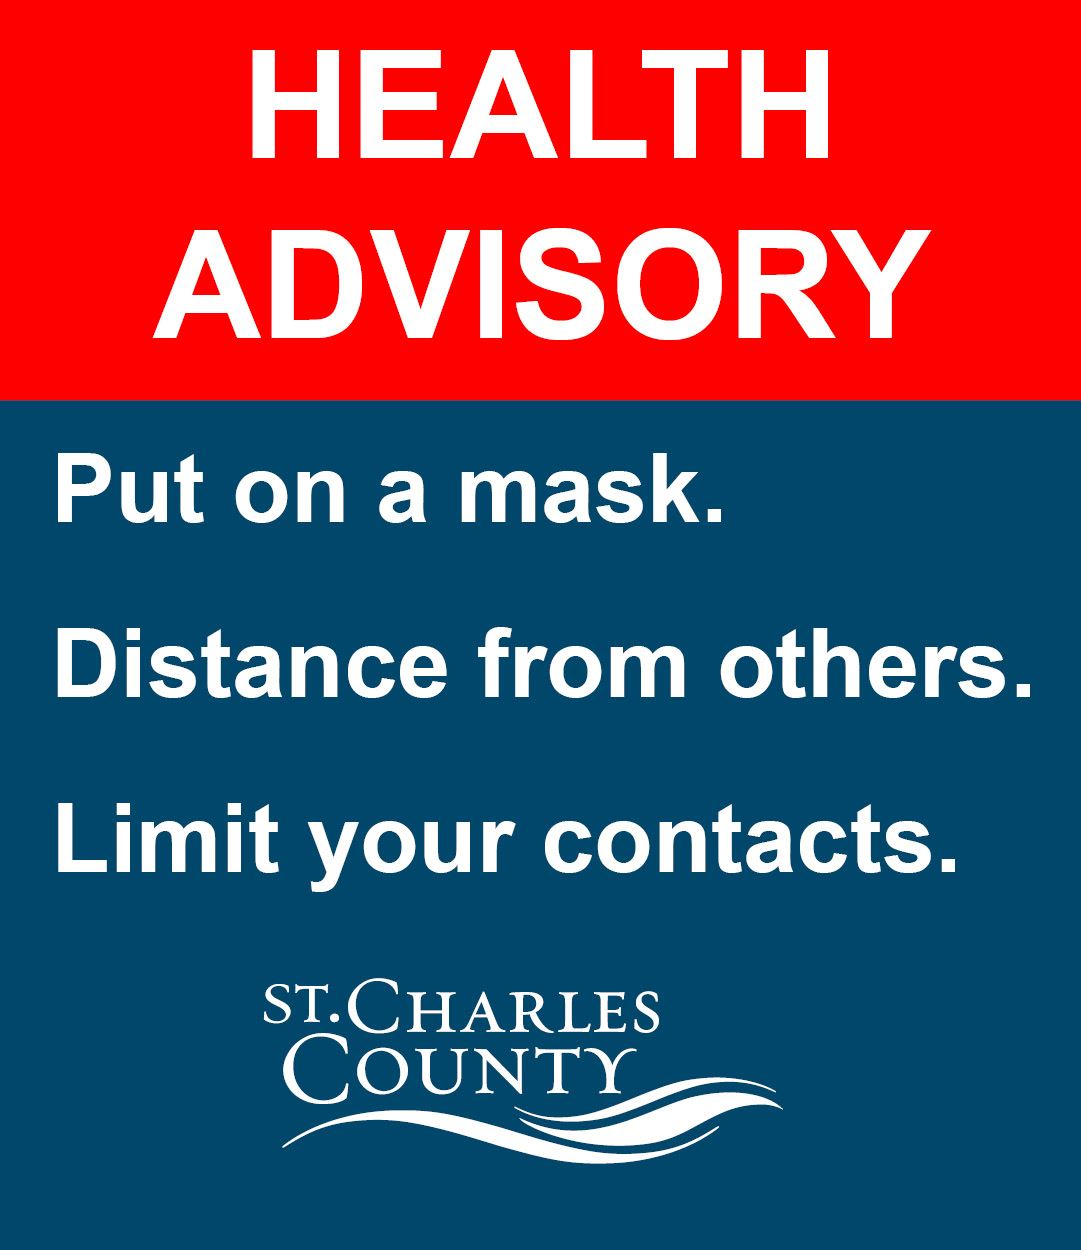 Health Advisory Carousel